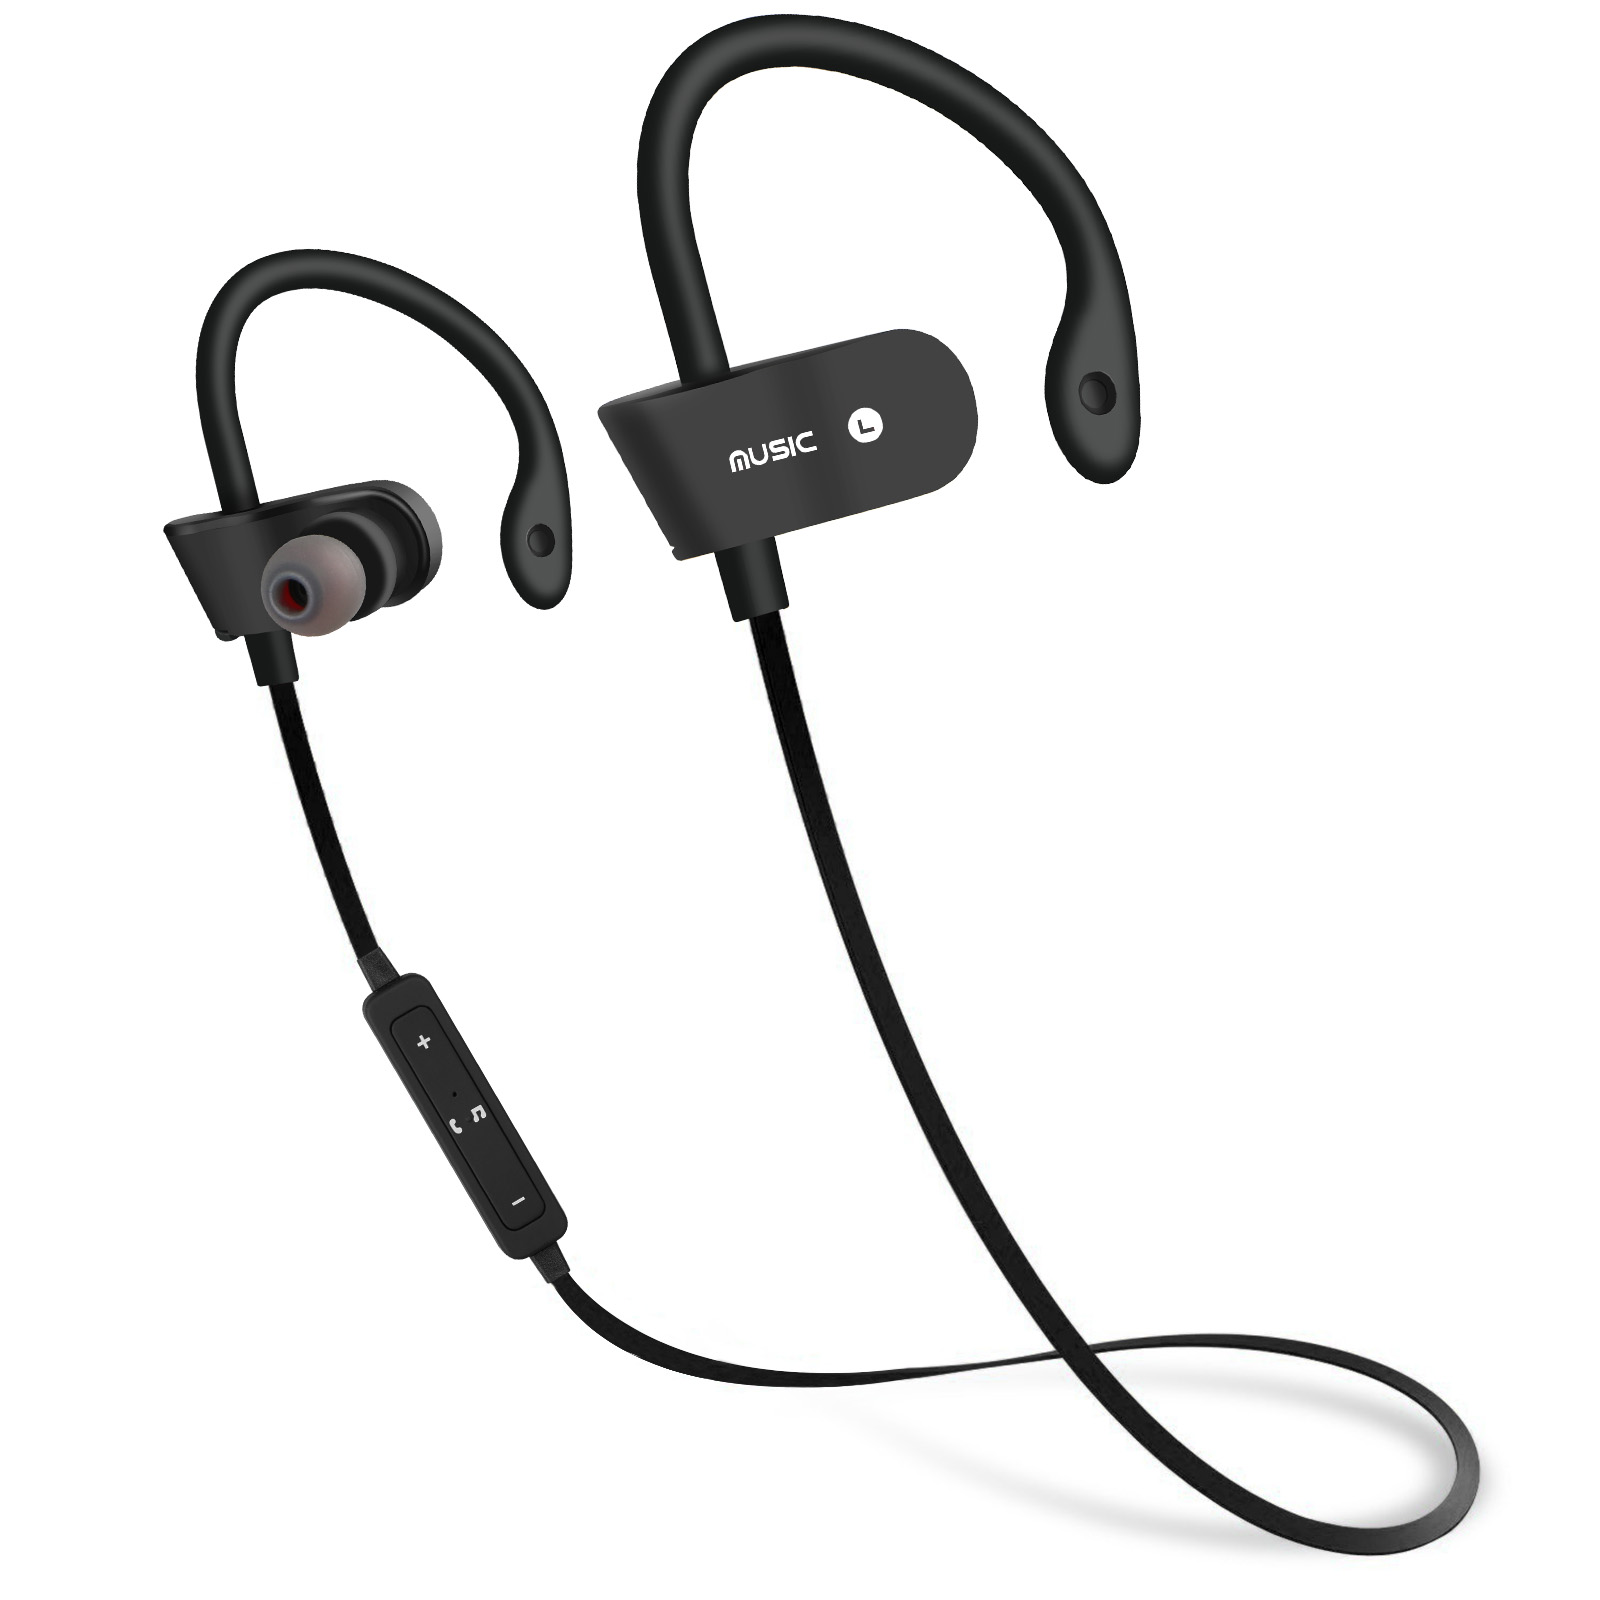 Wireless Bluetooth 4.1 Earphone Earbuds Sport Bass Stereo Surround In-Ear Headphone Headset with MIC Microphone Black